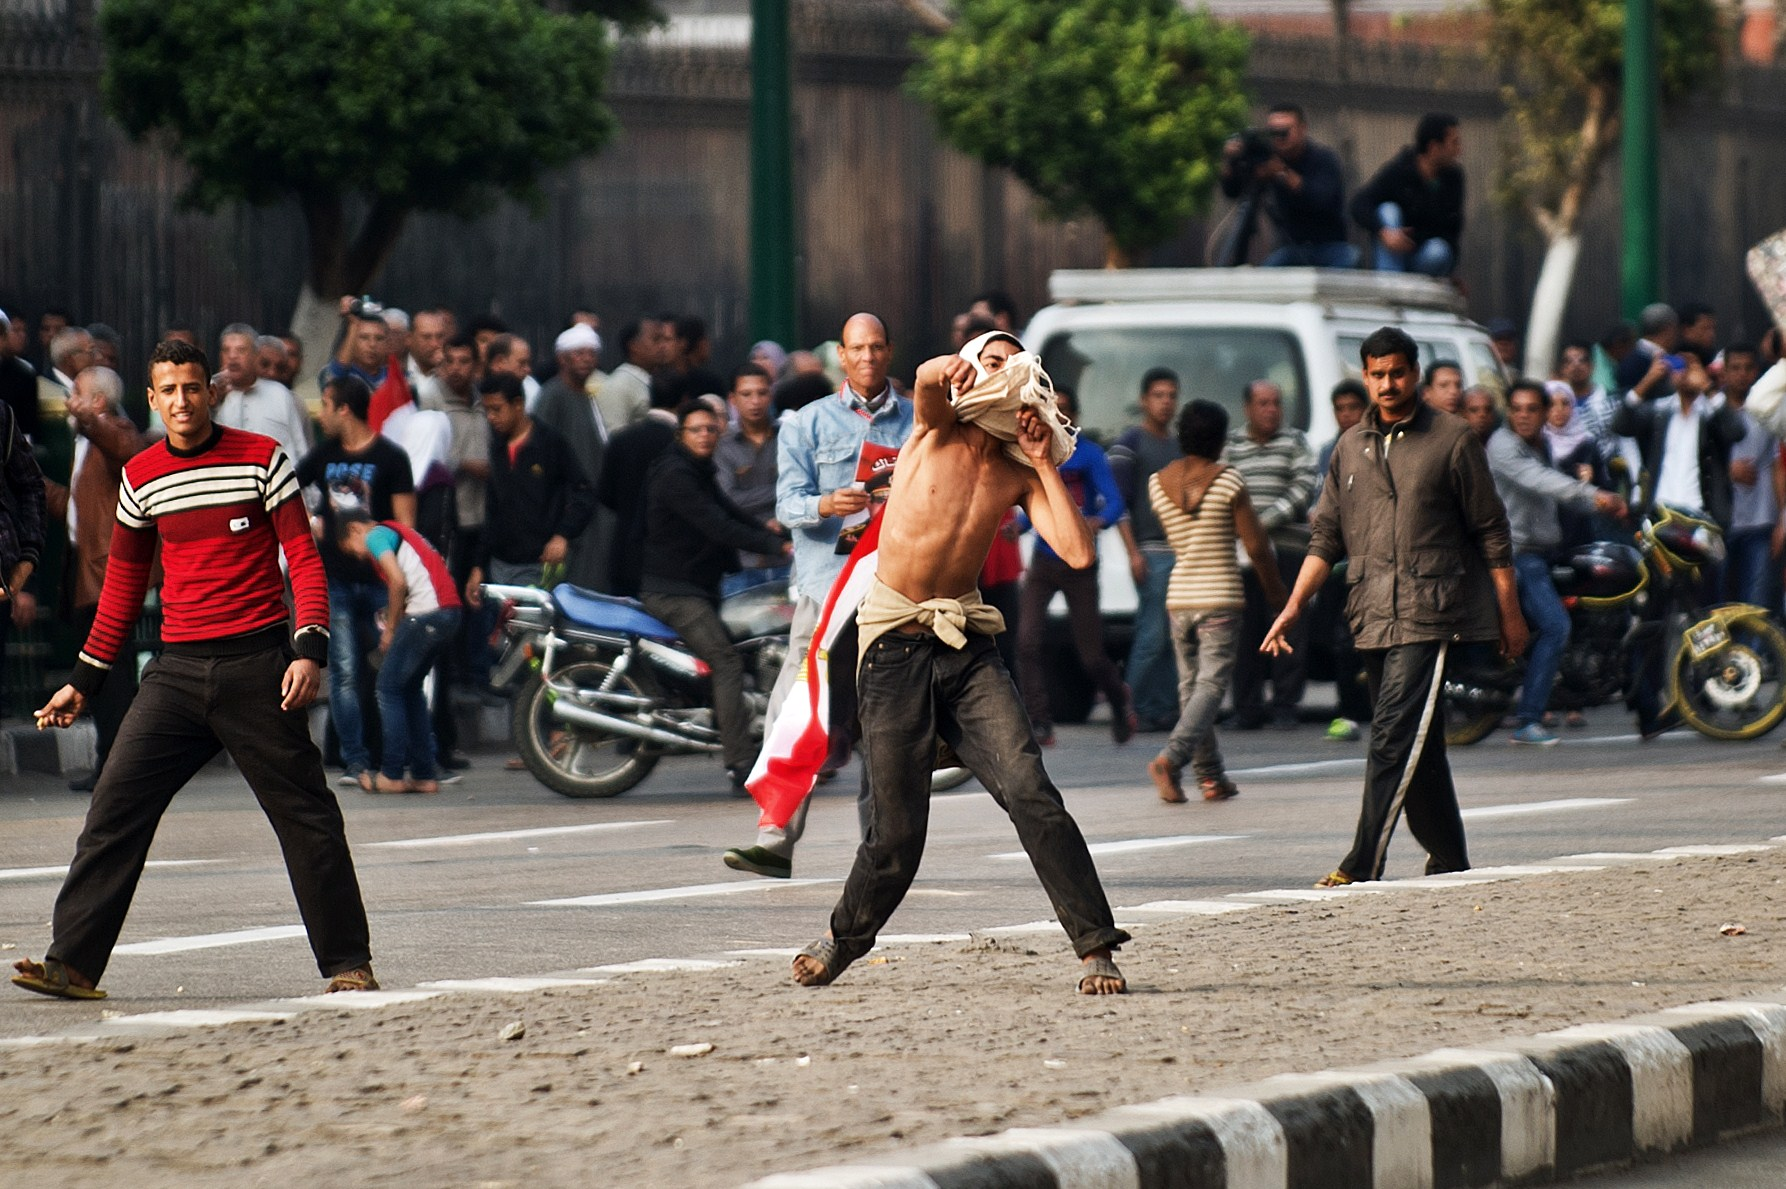 Egyptian supporters of the military regime throw stones towards anti-regime protesters (unseen) during clashes in Cairo's Tahrir Square on November 19, 2013 in Cairo, (AFP PHOTO/GIANLUIGI GUERCIA)